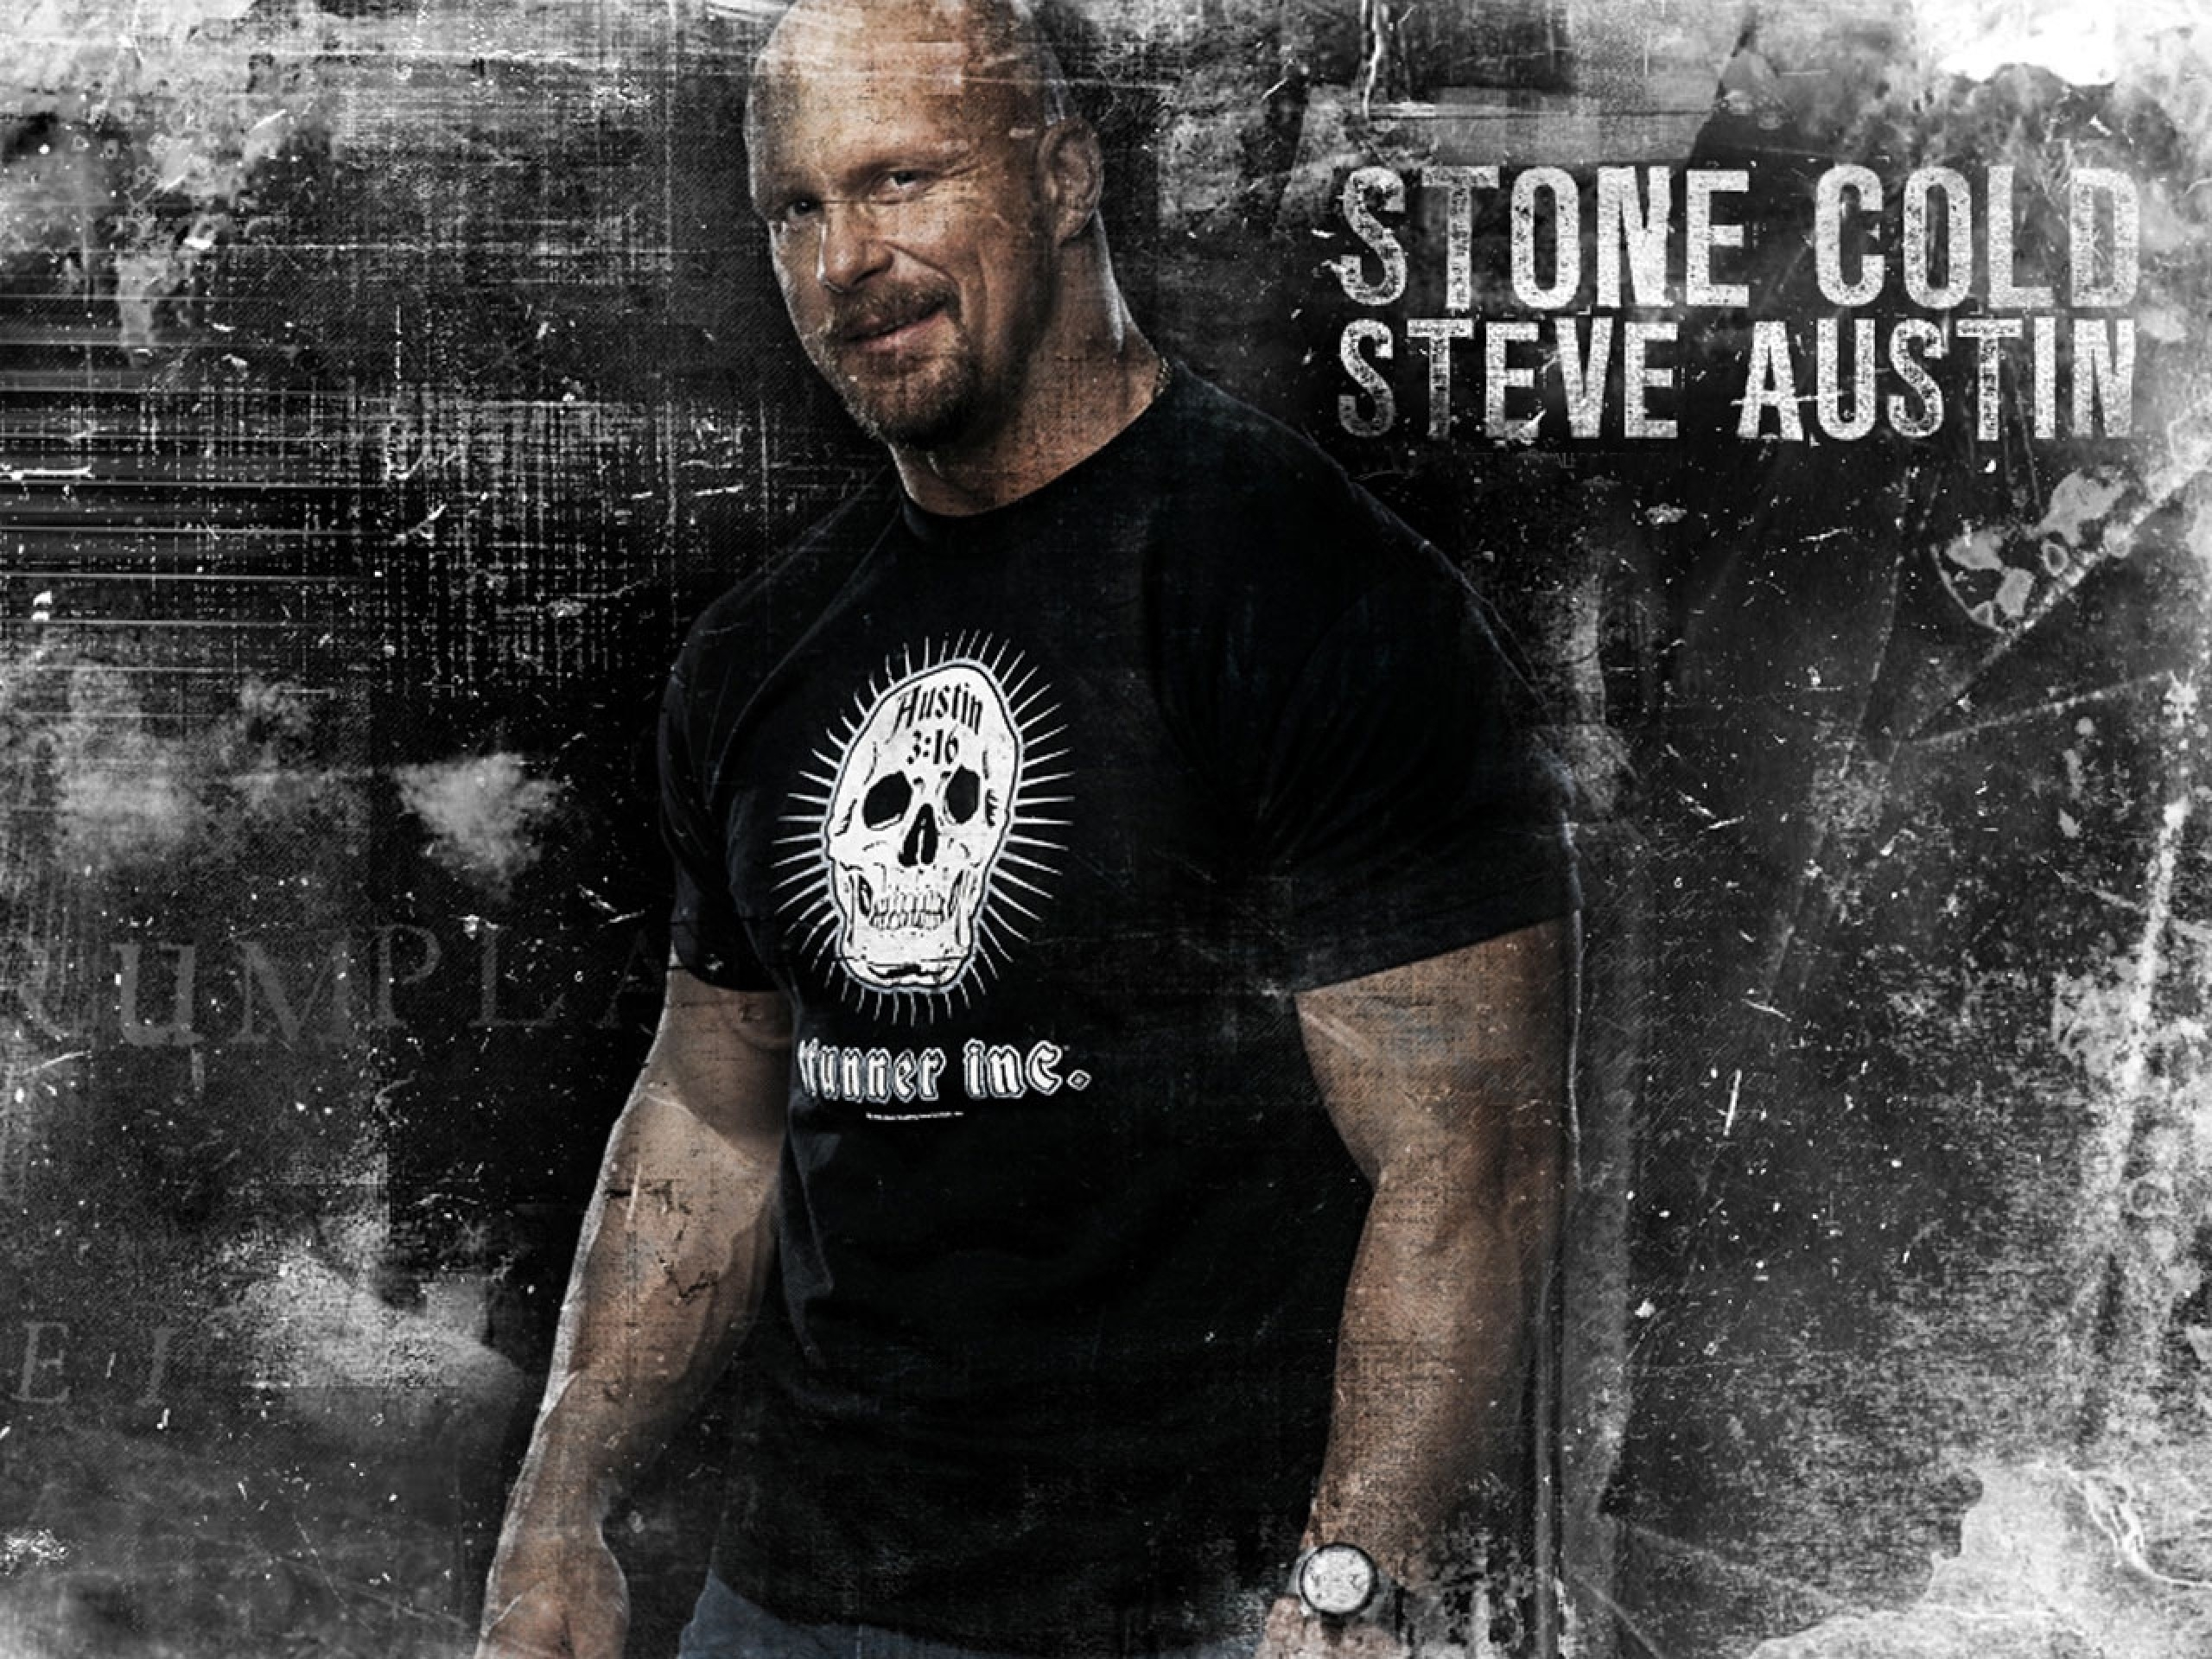 austin stone cold hd desktop wide